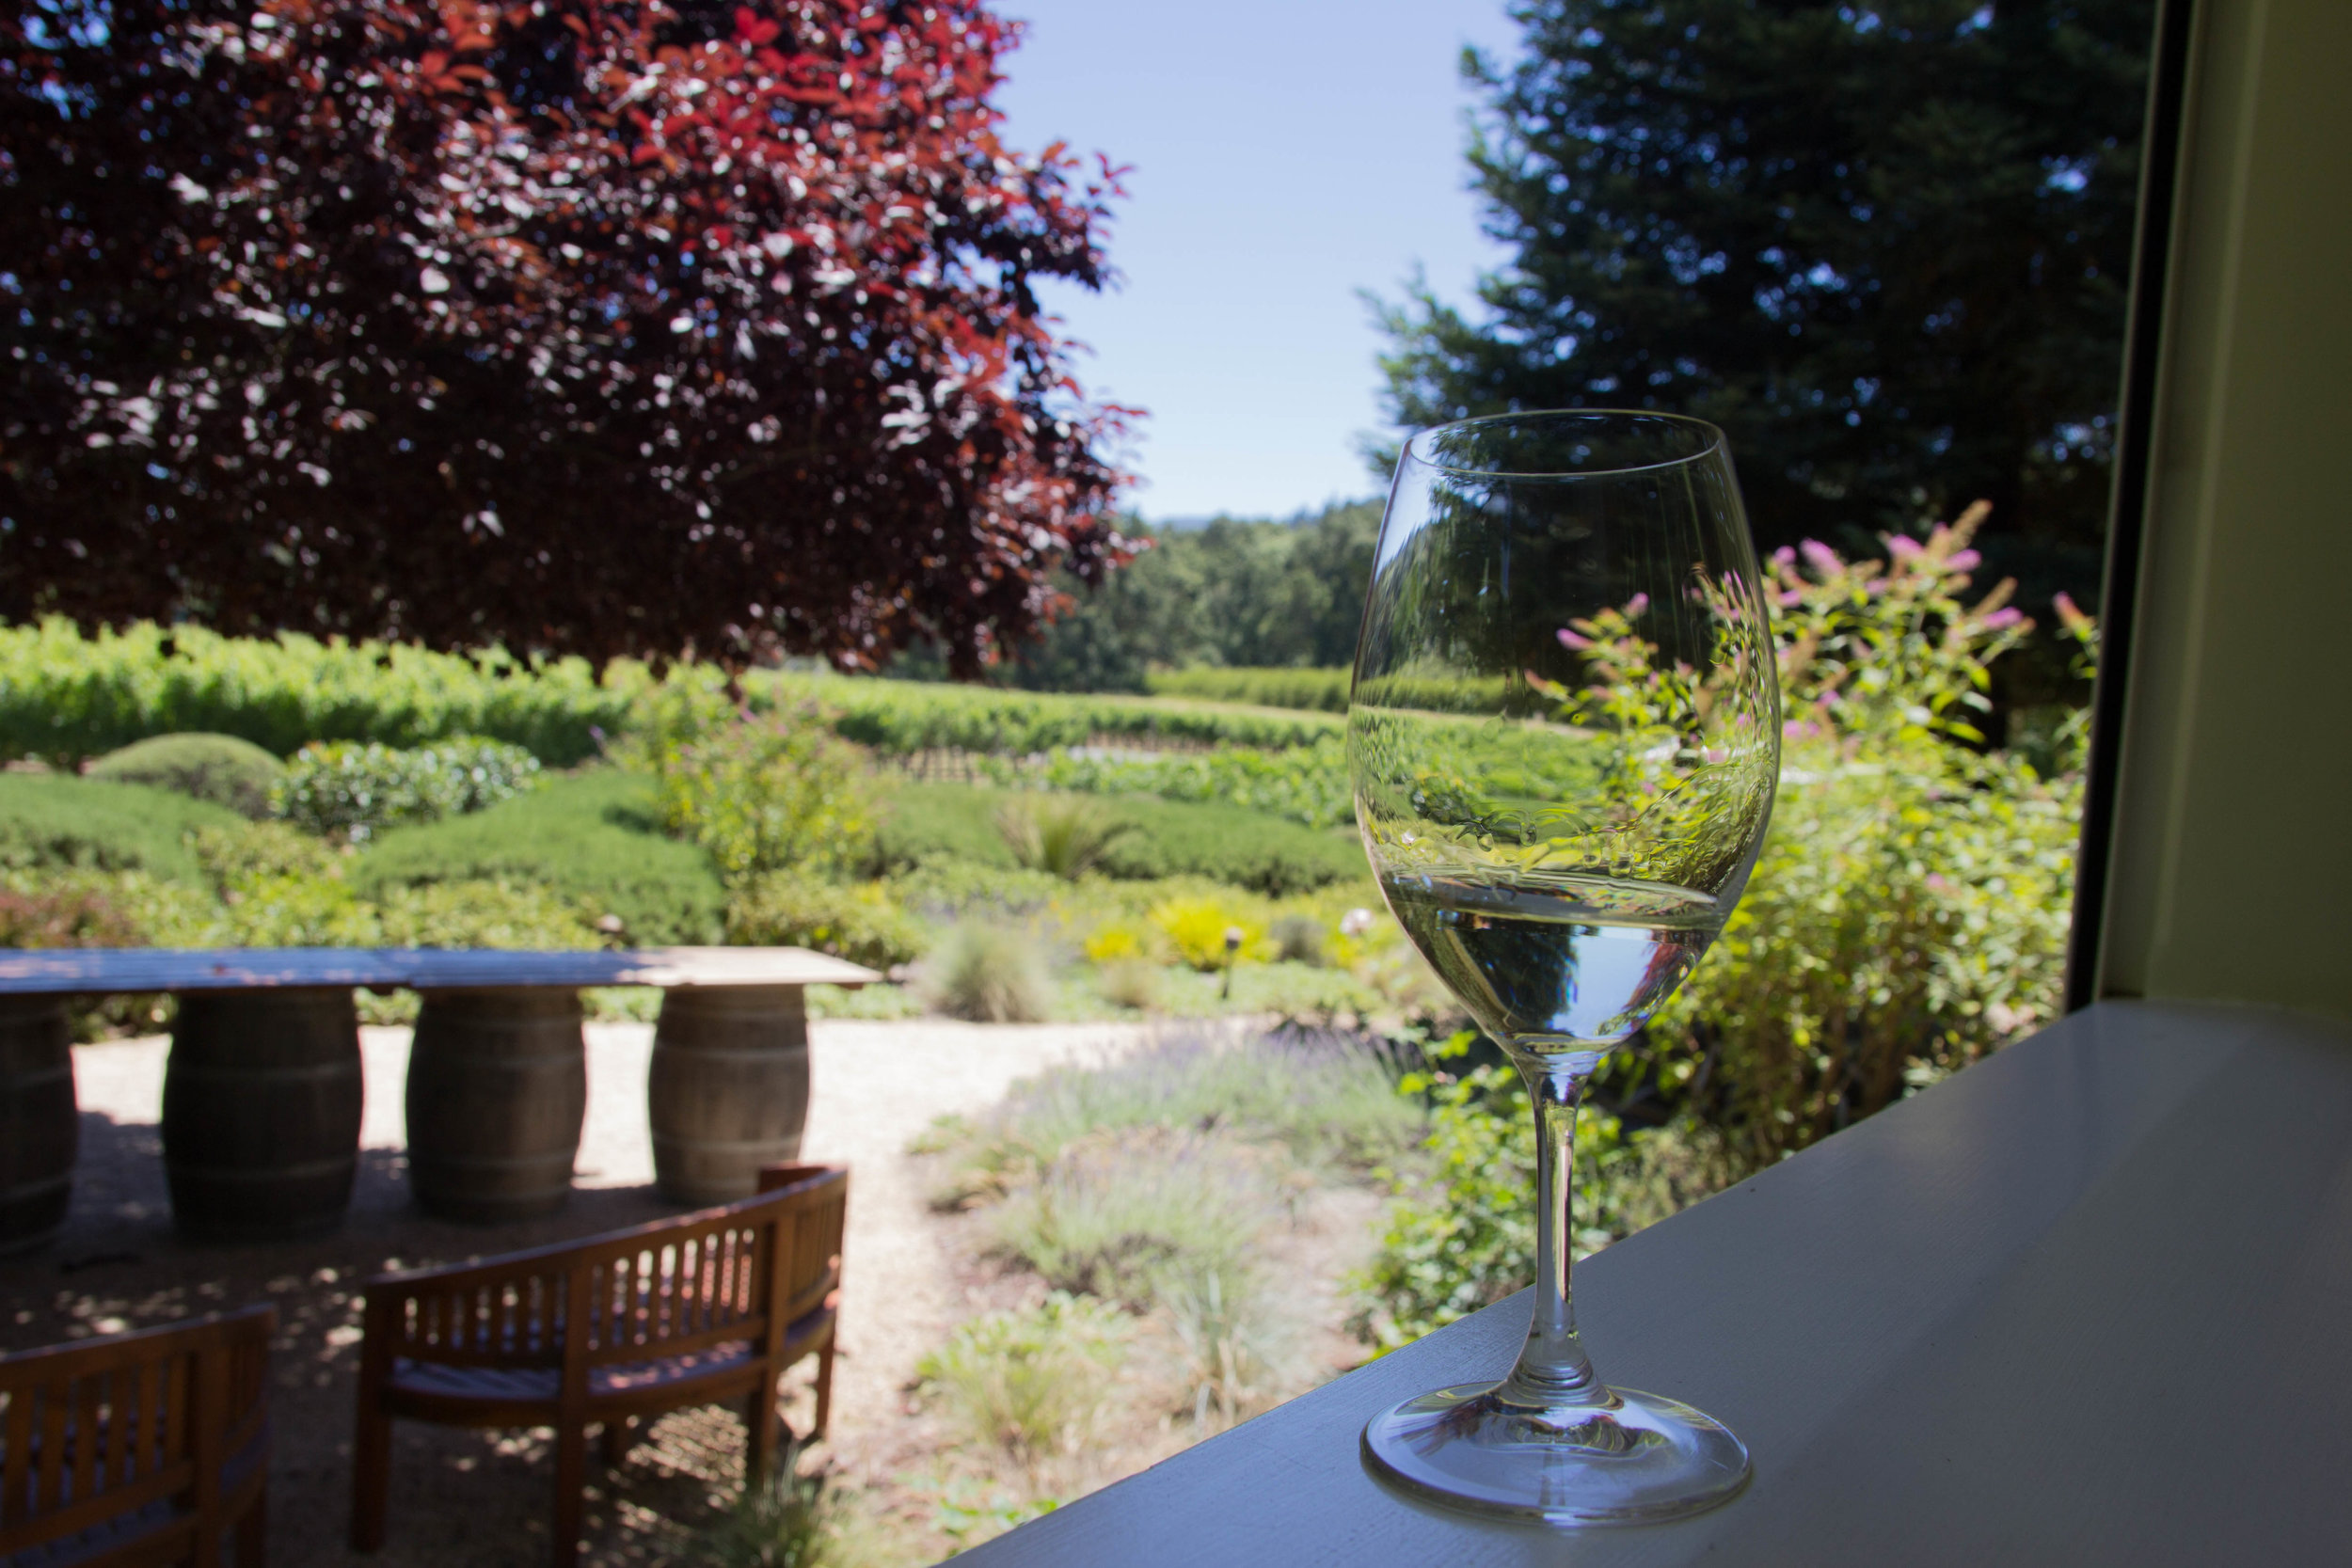 napa, napa valley, california, wine country, 24 hours in napa, what to do if you only have 1 day in napa, where to wine taste in napa, duckhorn winery, merlot